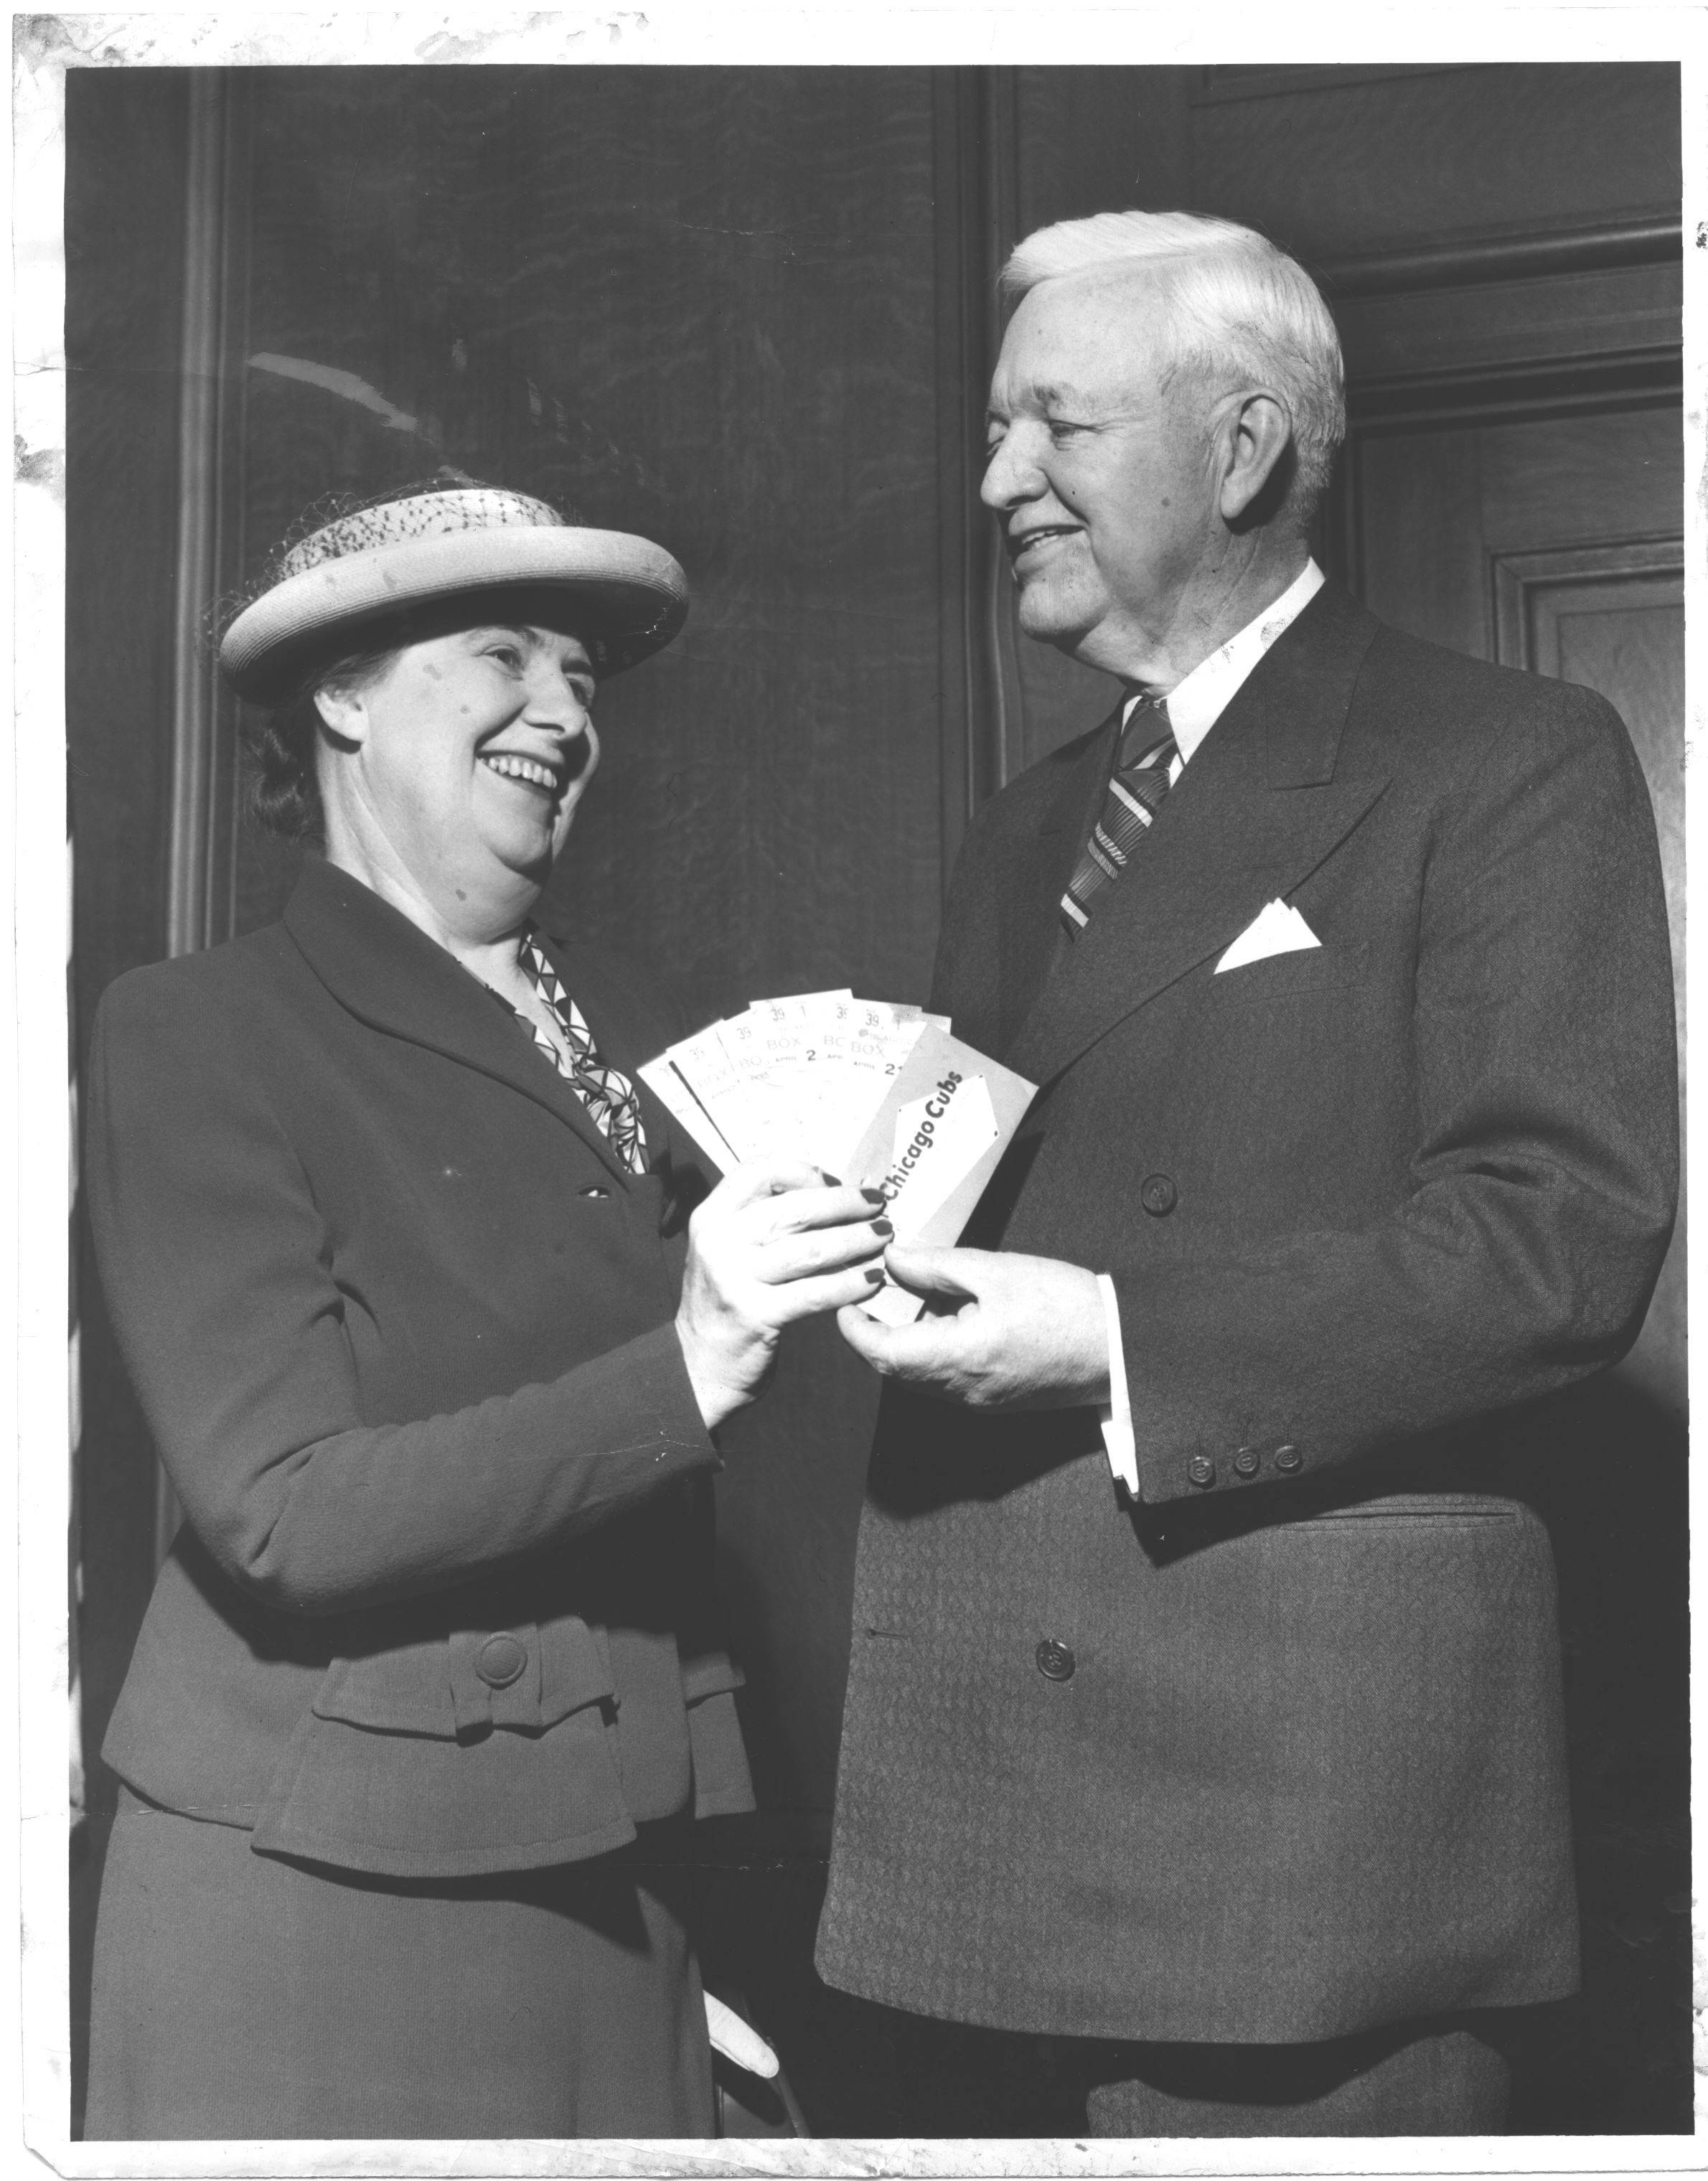 The late Margaret Donahue, left, pictured with Chicago Mayor Martin H. Kennelly in 1950, was a pioneer in the Chicago Cubs organization. The Huntley native's nieces will speak about her life at the Huntley Historical Society's annual meeting.